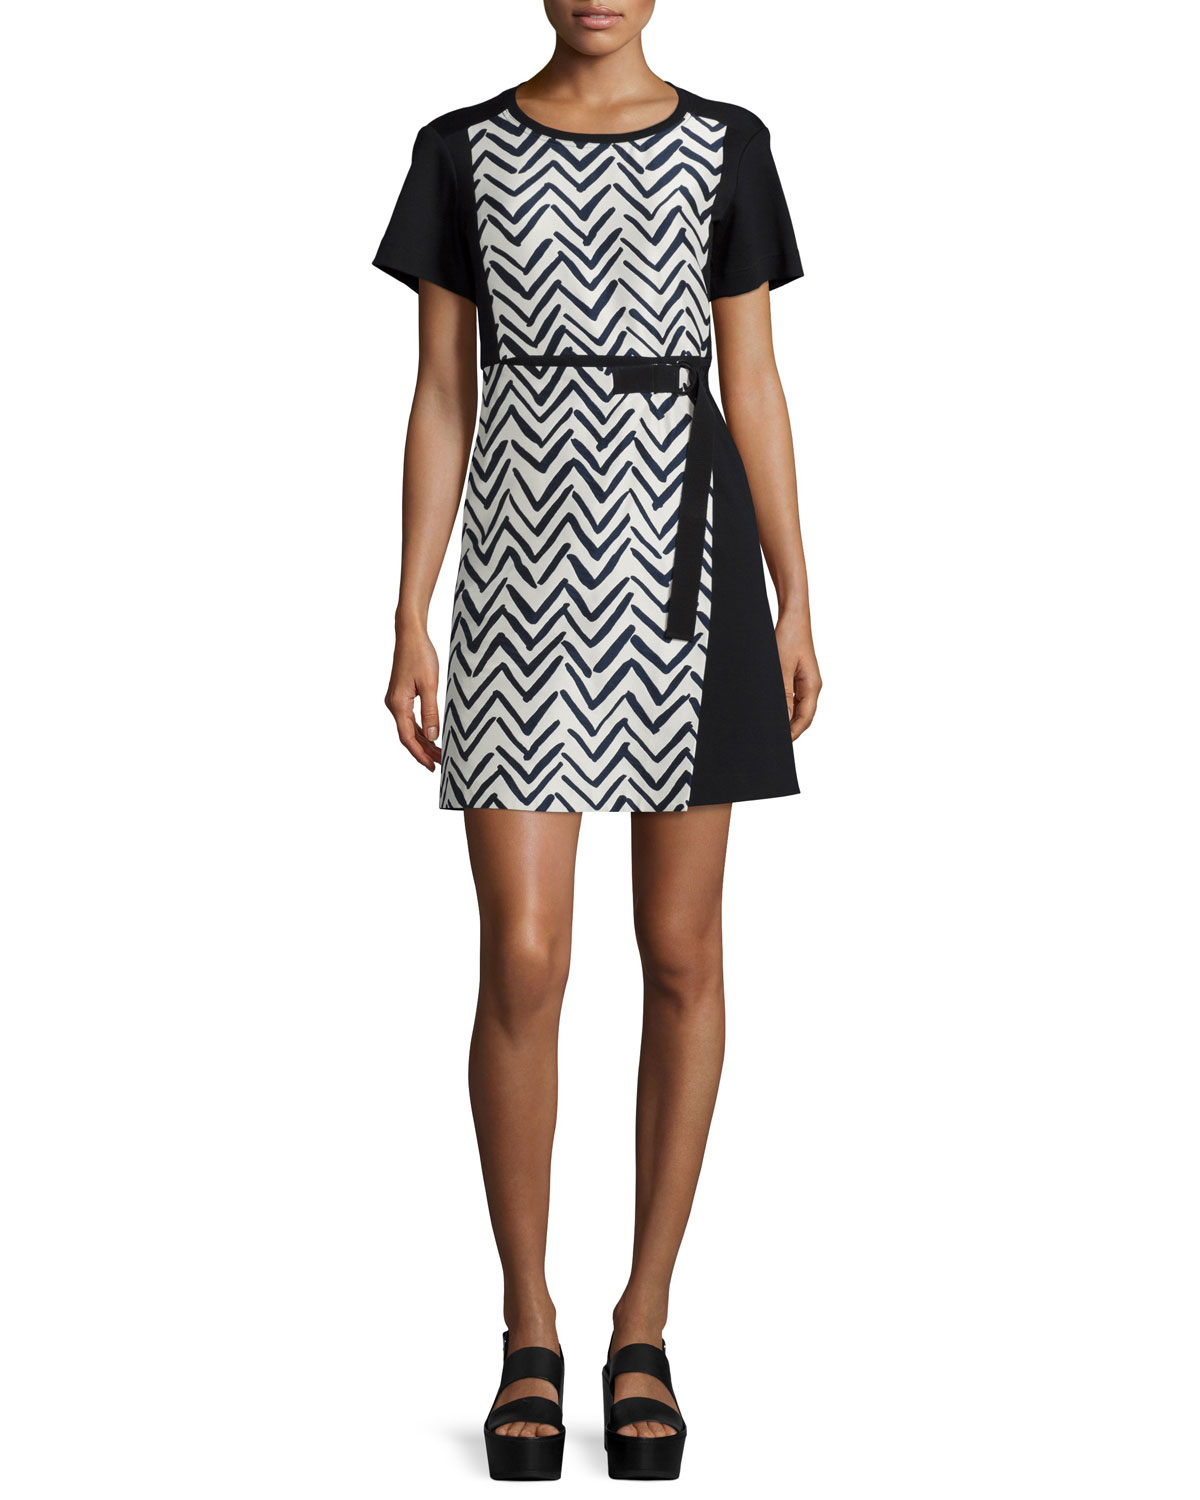 Shop womens chevron dress cheap sale online, you can buy chevron maxi dresses, chevron print dresses, plus size chevron dresses and white chevron dresses for women at wholesale prices on northtercessbudh.cf FREE shipping available worldwide.